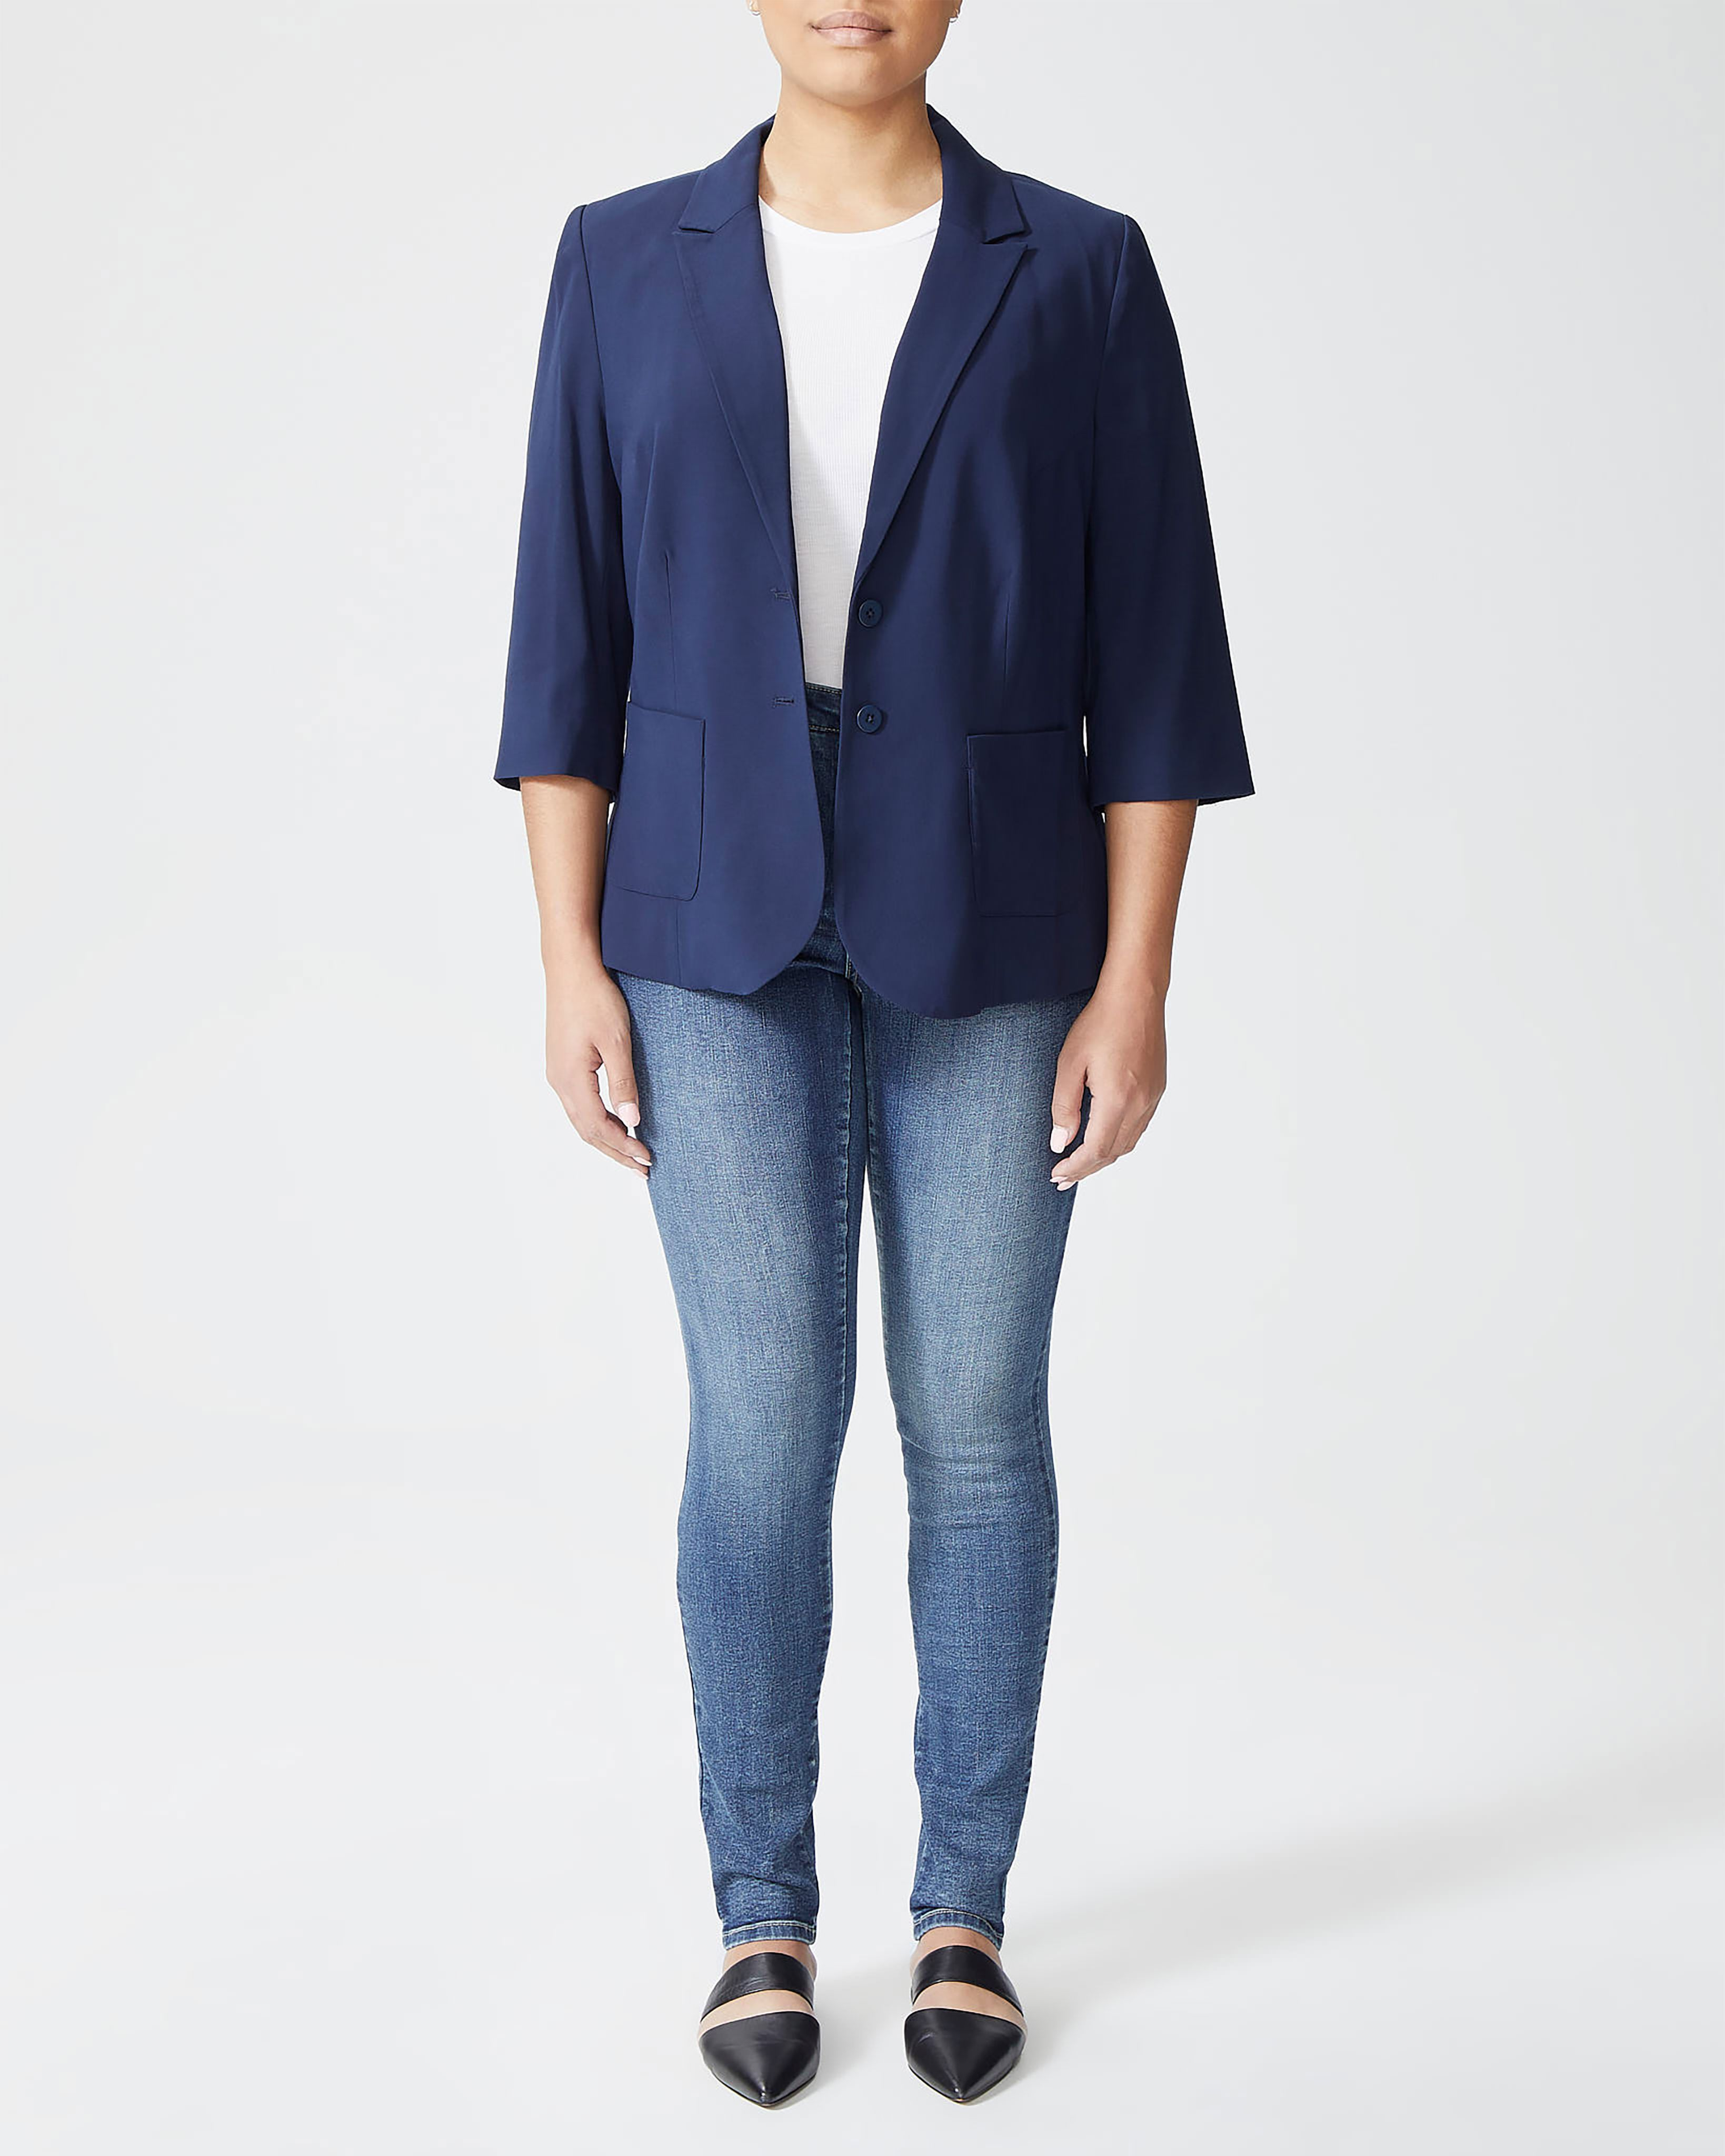 Meg Short Blazer - Navy